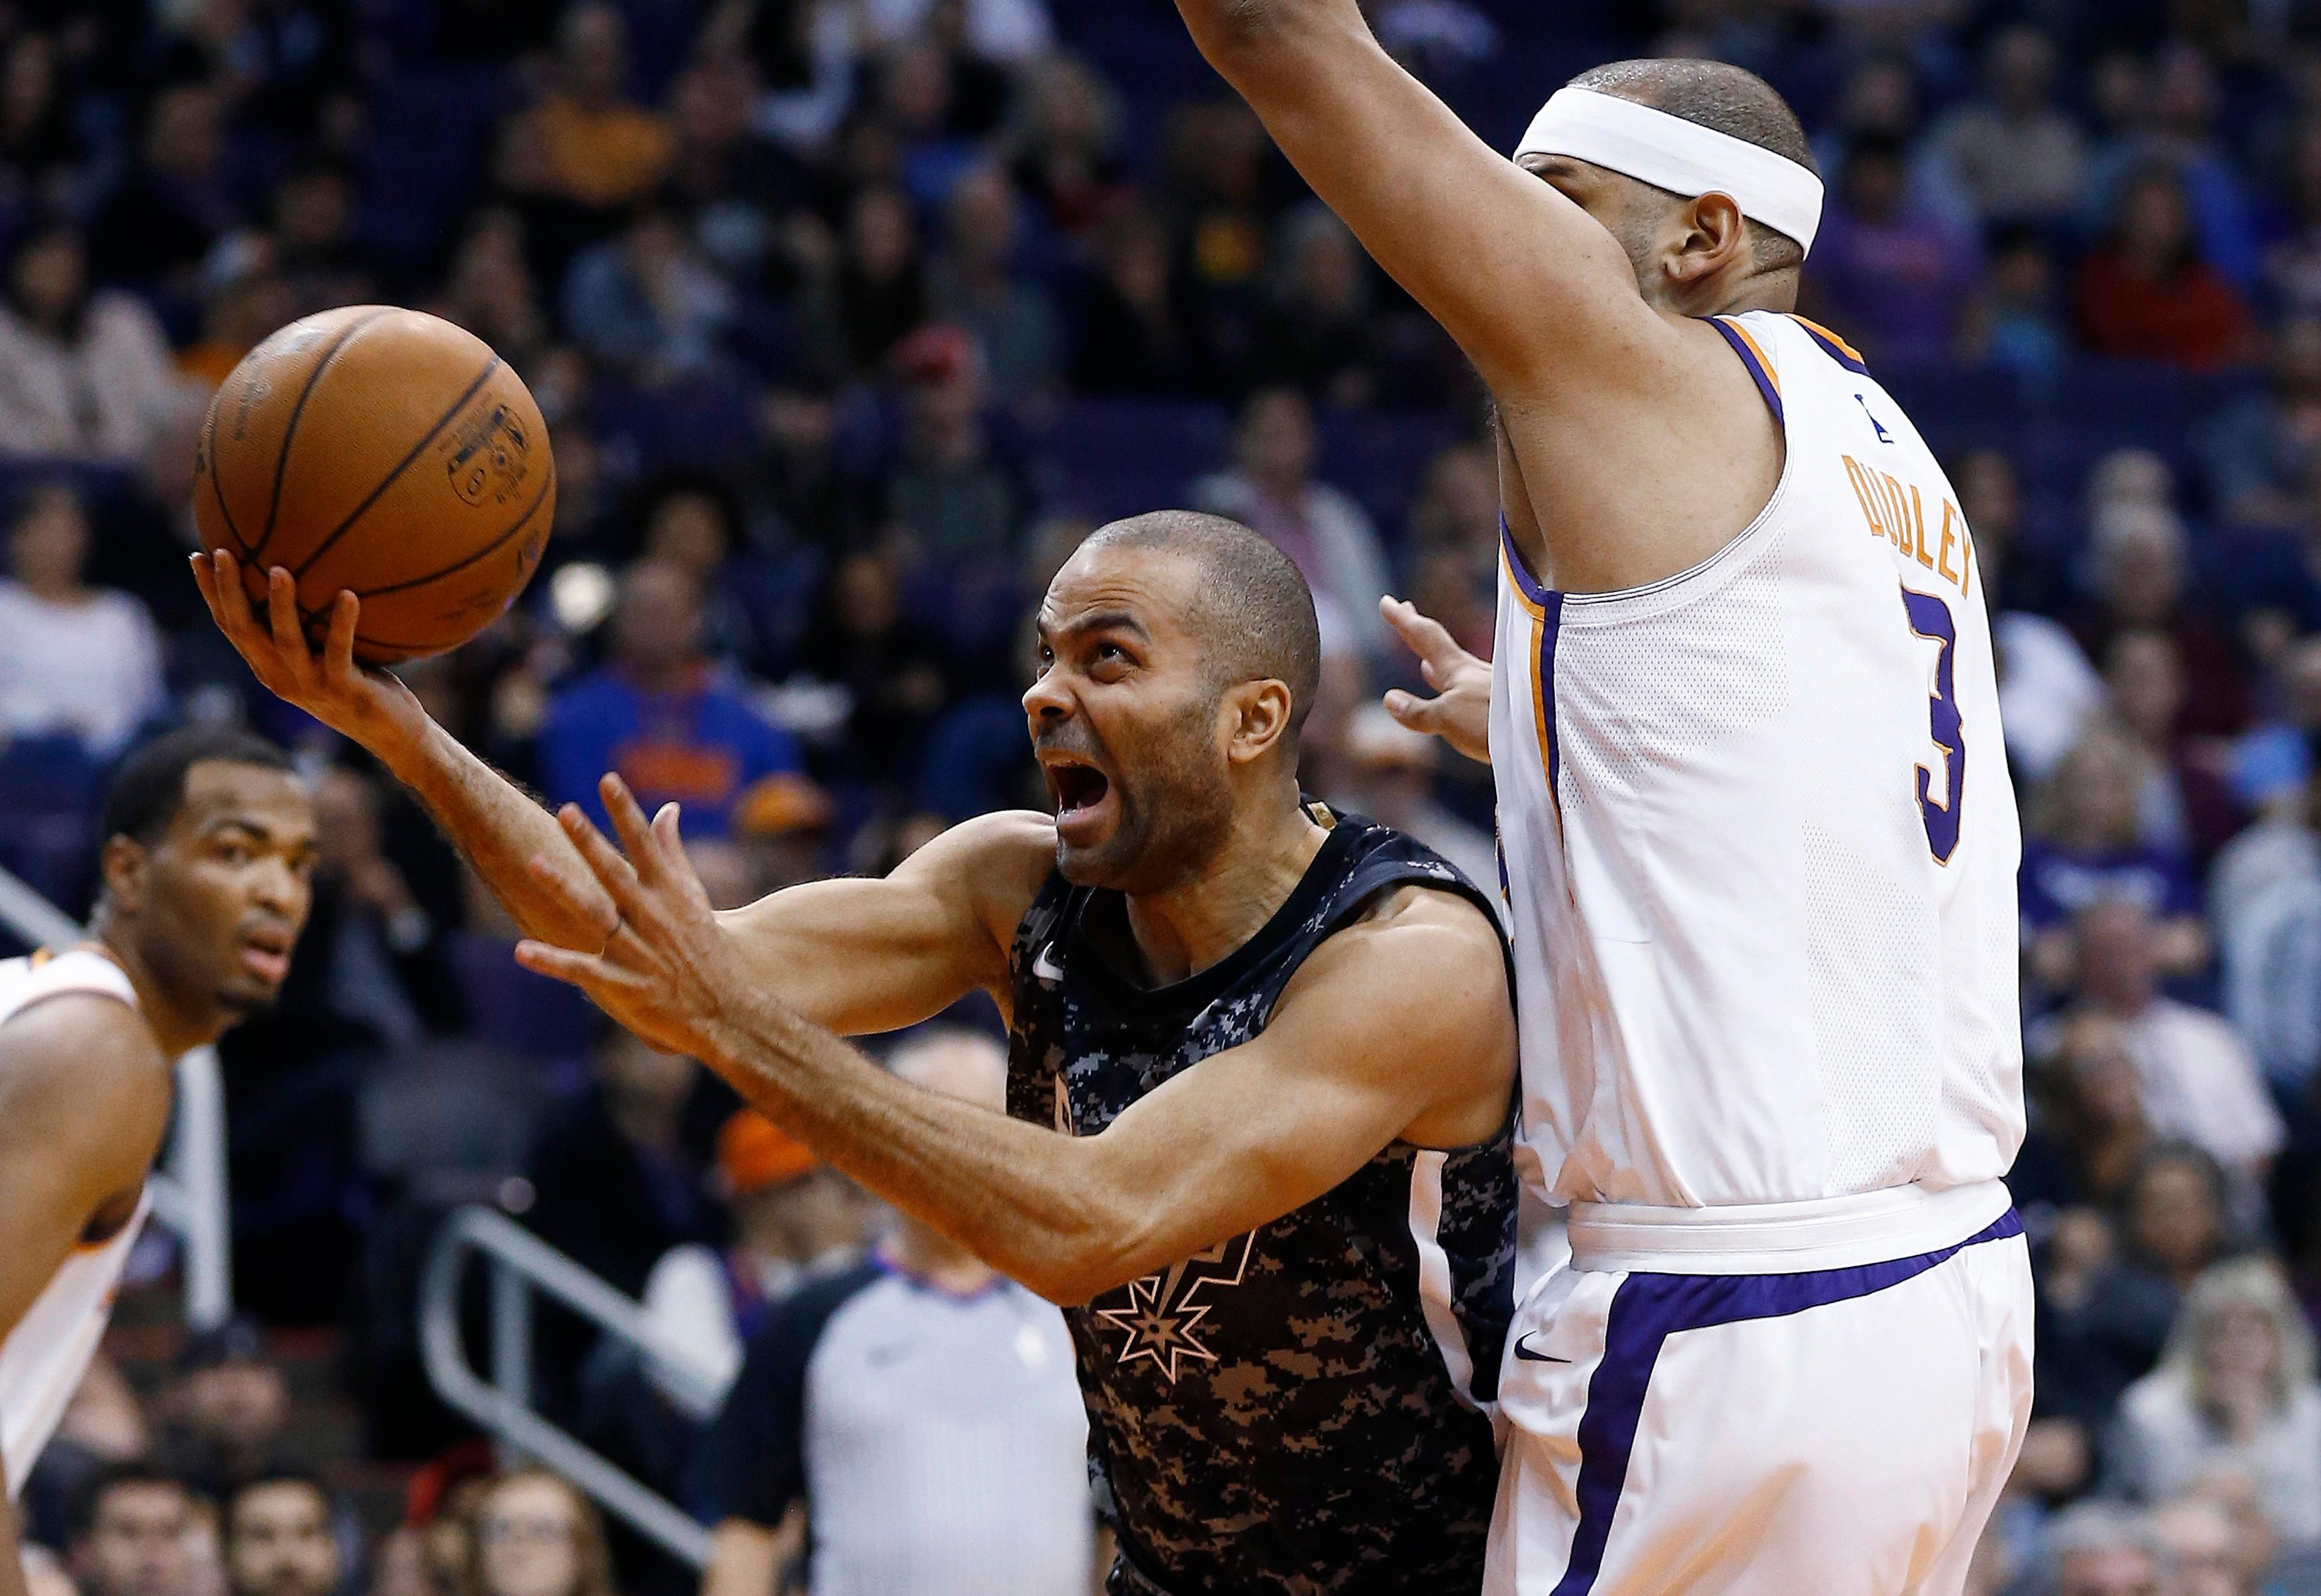 San Antonio Spurs guard Tony Parker, middle, is fouled as he drives past Phoenix Suns forward Jared Dudley (3) as Suns forward TJ Warren, left, watches during the first half of an NBA basketball game Wednesday, Feb. 7, 2018, in Phoenix. (AP Photo/Ross D. Franklin)